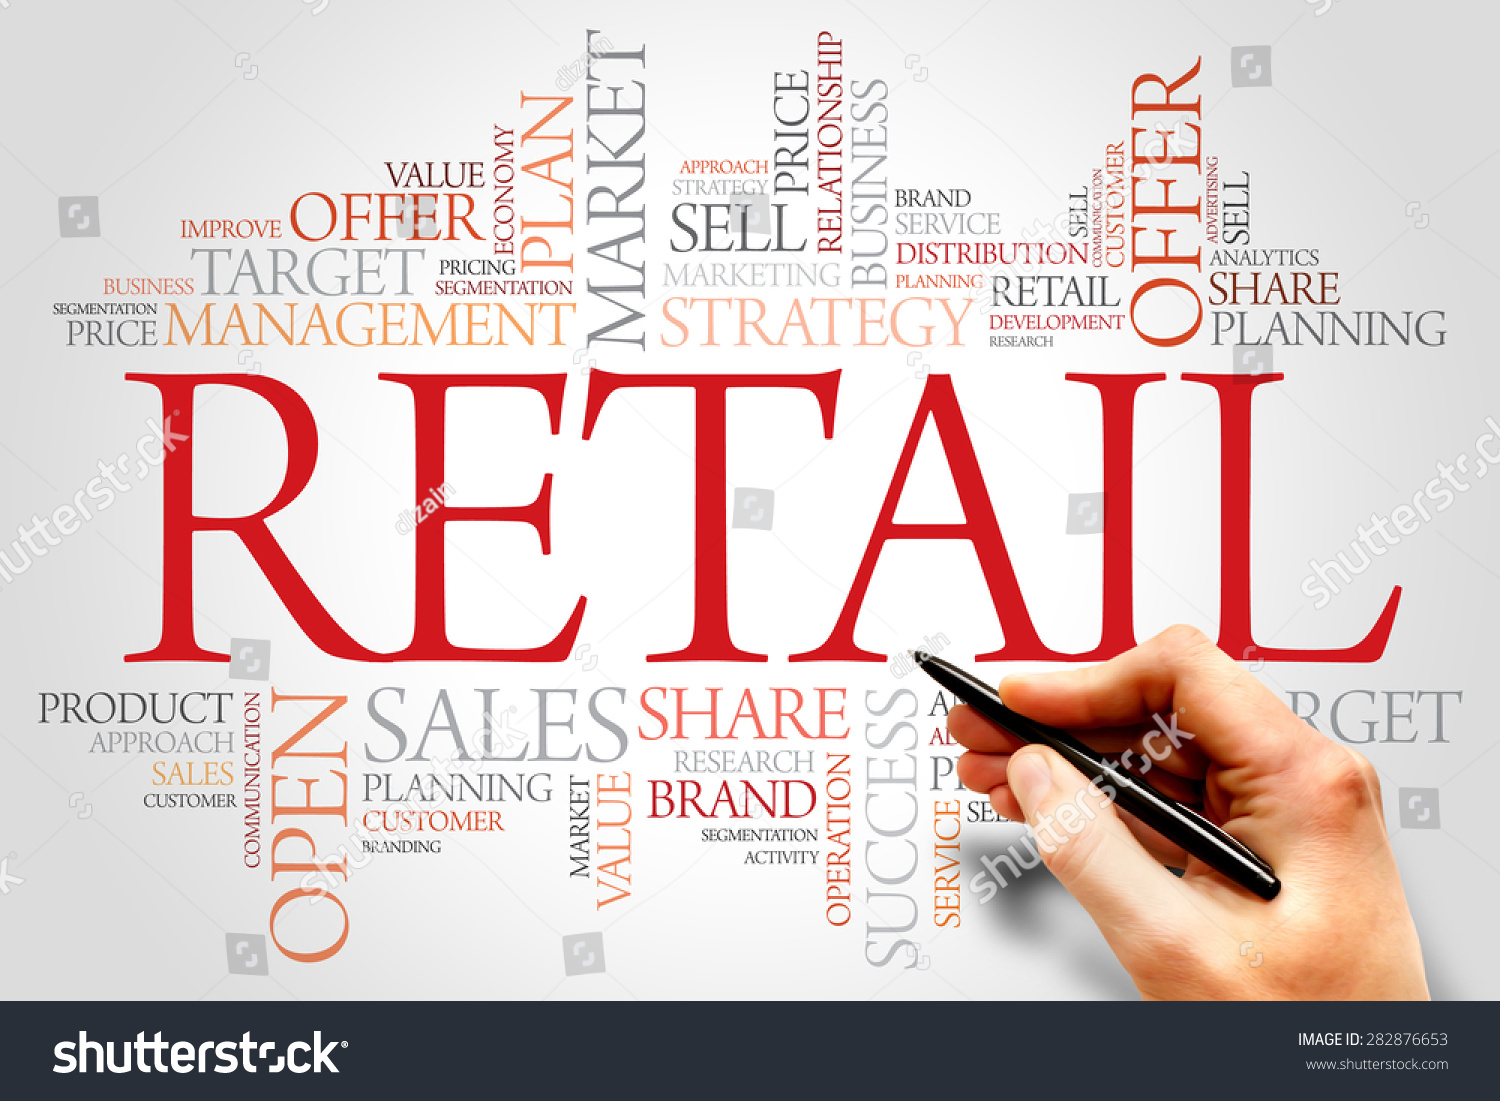 stock-photo-retail-word-cloud-business-concept-282876653.jpg